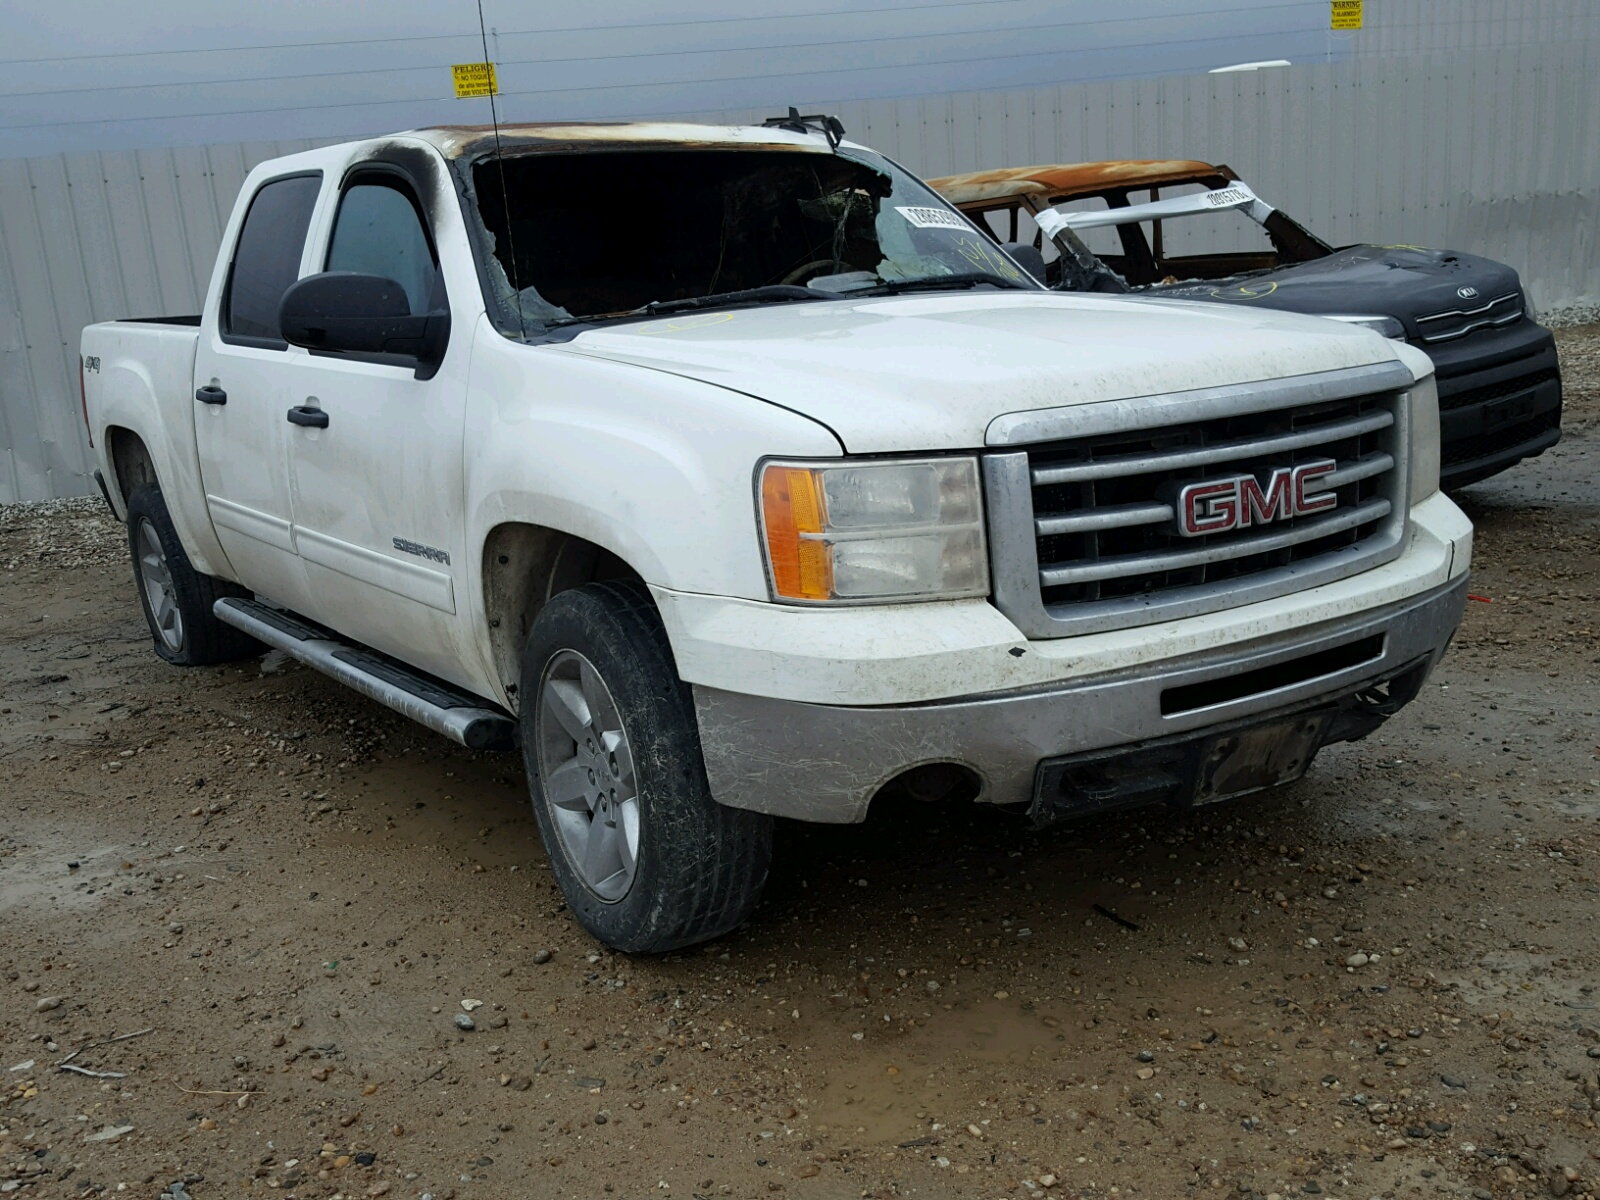 silverado meets for hd duramax and sale oem performance chevy filter n kn dsl line diesel fuel specs gmc pickup replacement from k sierra blog